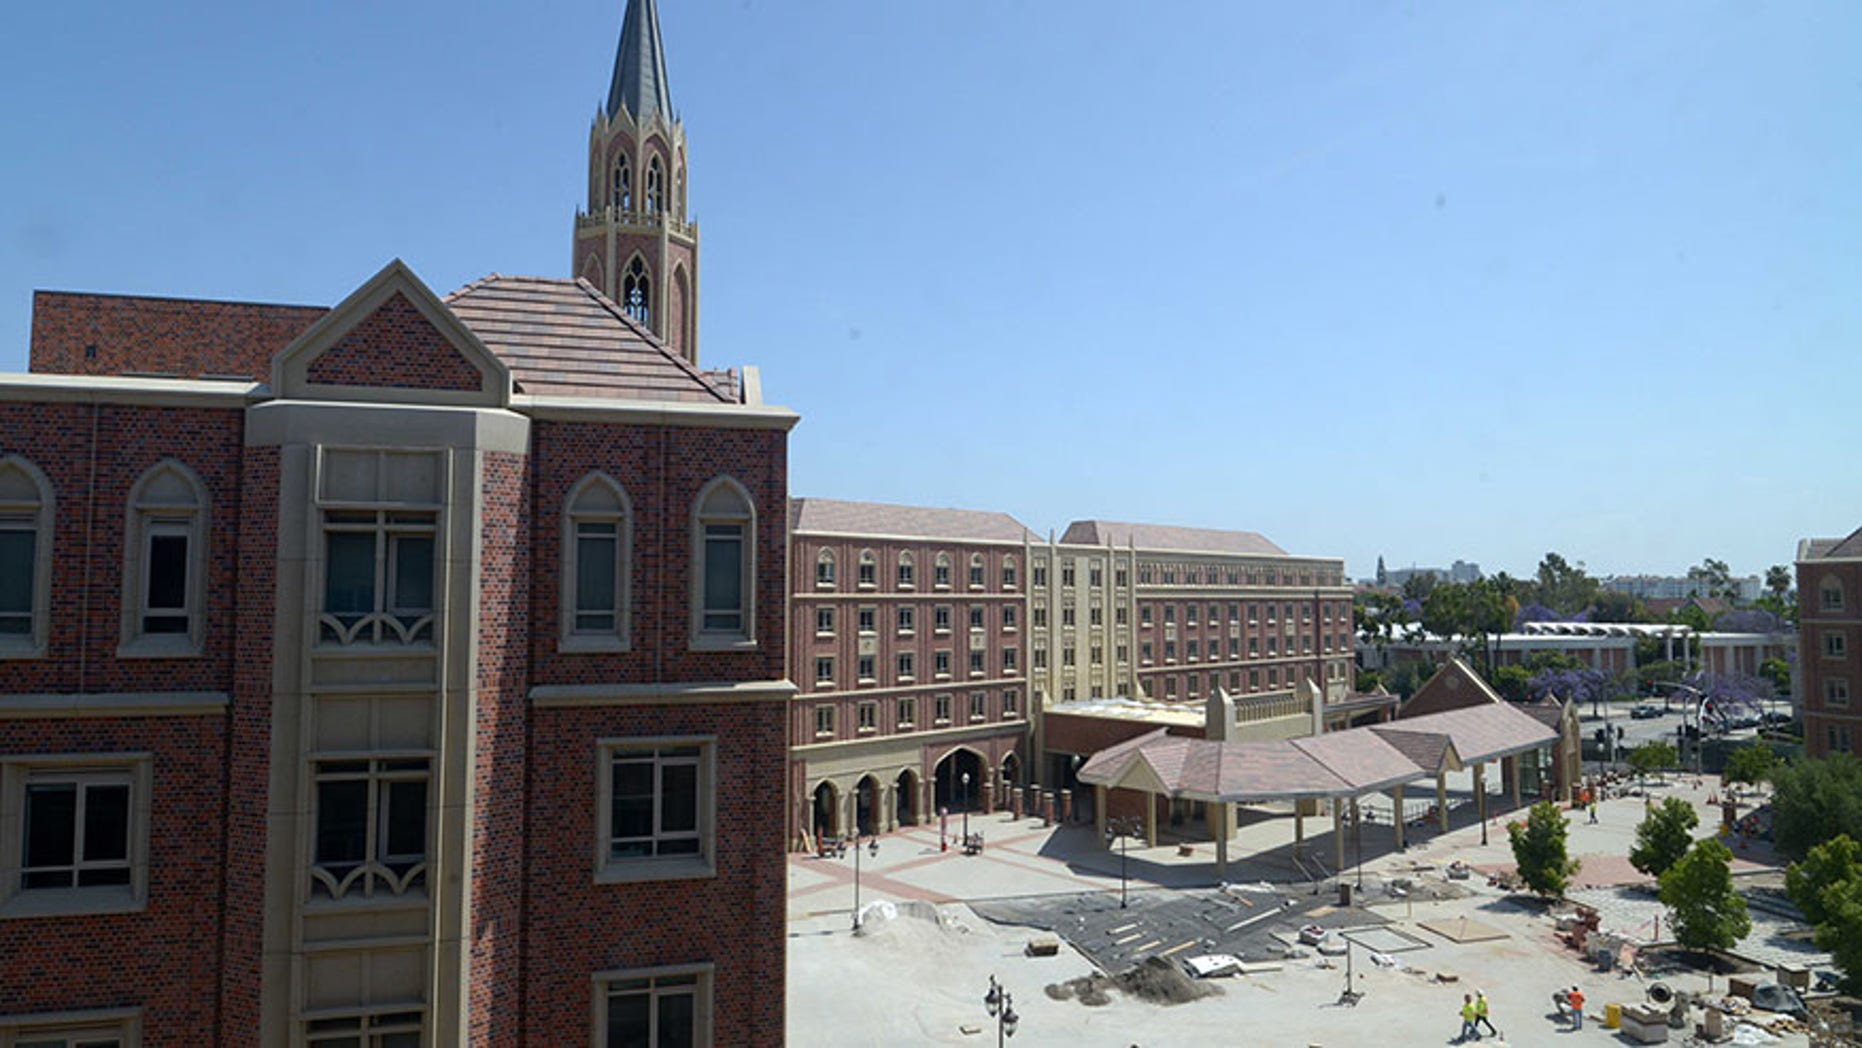 A general view of The University Village under construction on the campus of the University of Southern California is seen in this May 2017 photo. (USA Today Sports)